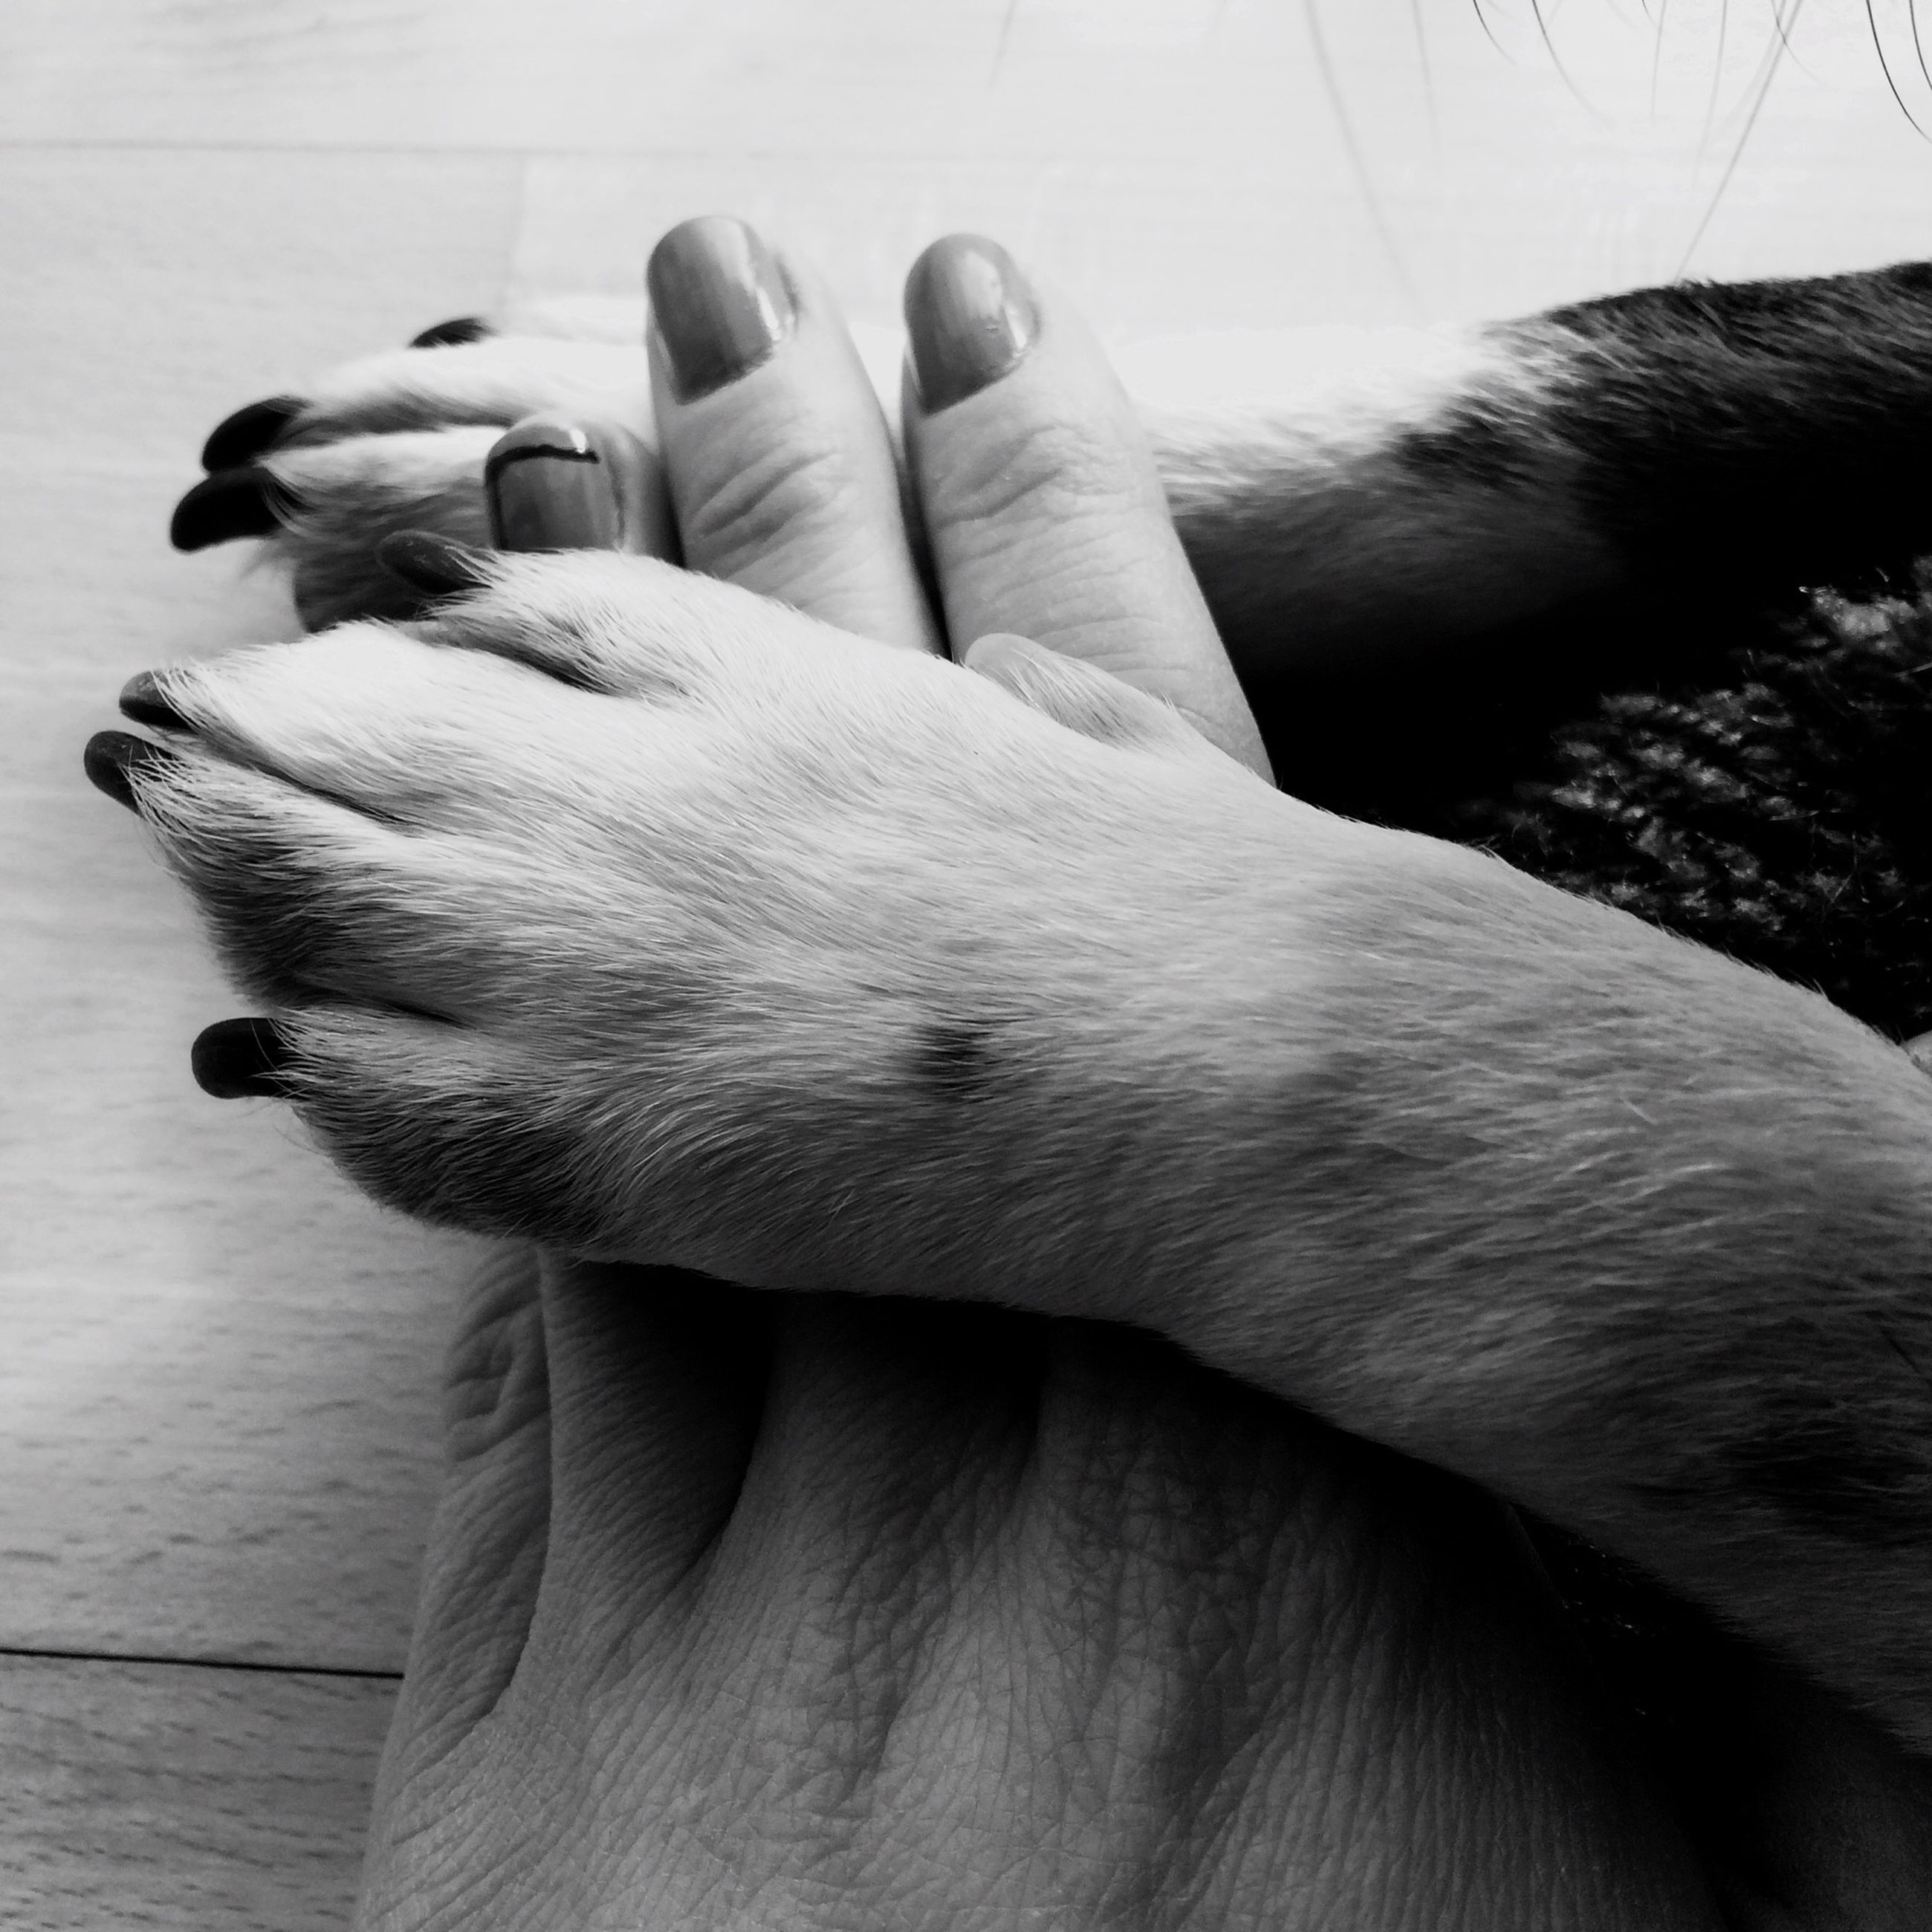 person, indoors, men, lifestyles, part of, animal themes, unrecognizable person, leisure activity, cropped, holding, close-up, personal perspective, human finger, pets, relaxation, togetherness